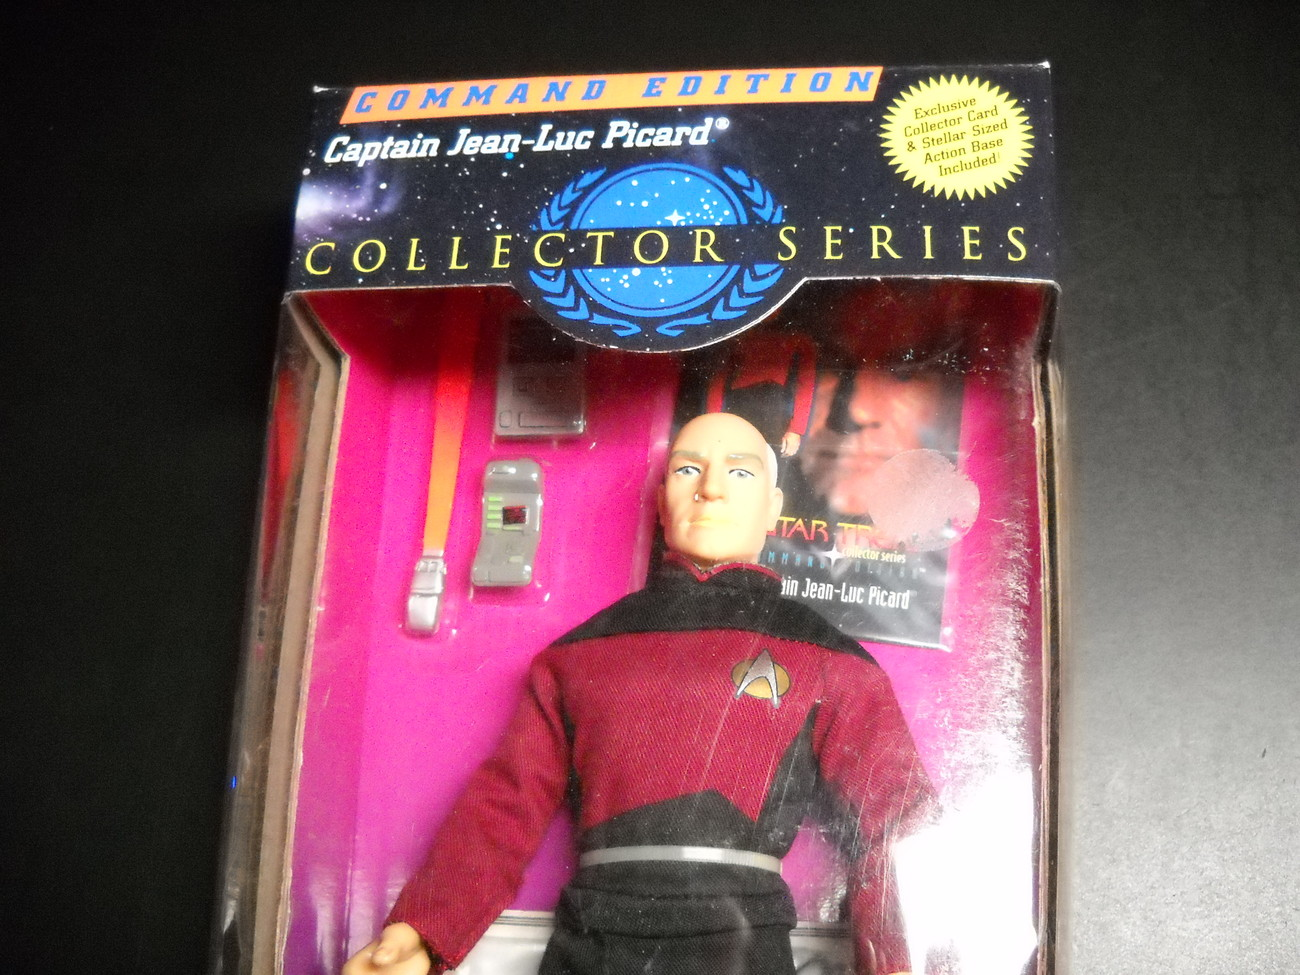 Star Trek Collector Series Command Edition Captain Jean-Luc Picard 1994 Sealed